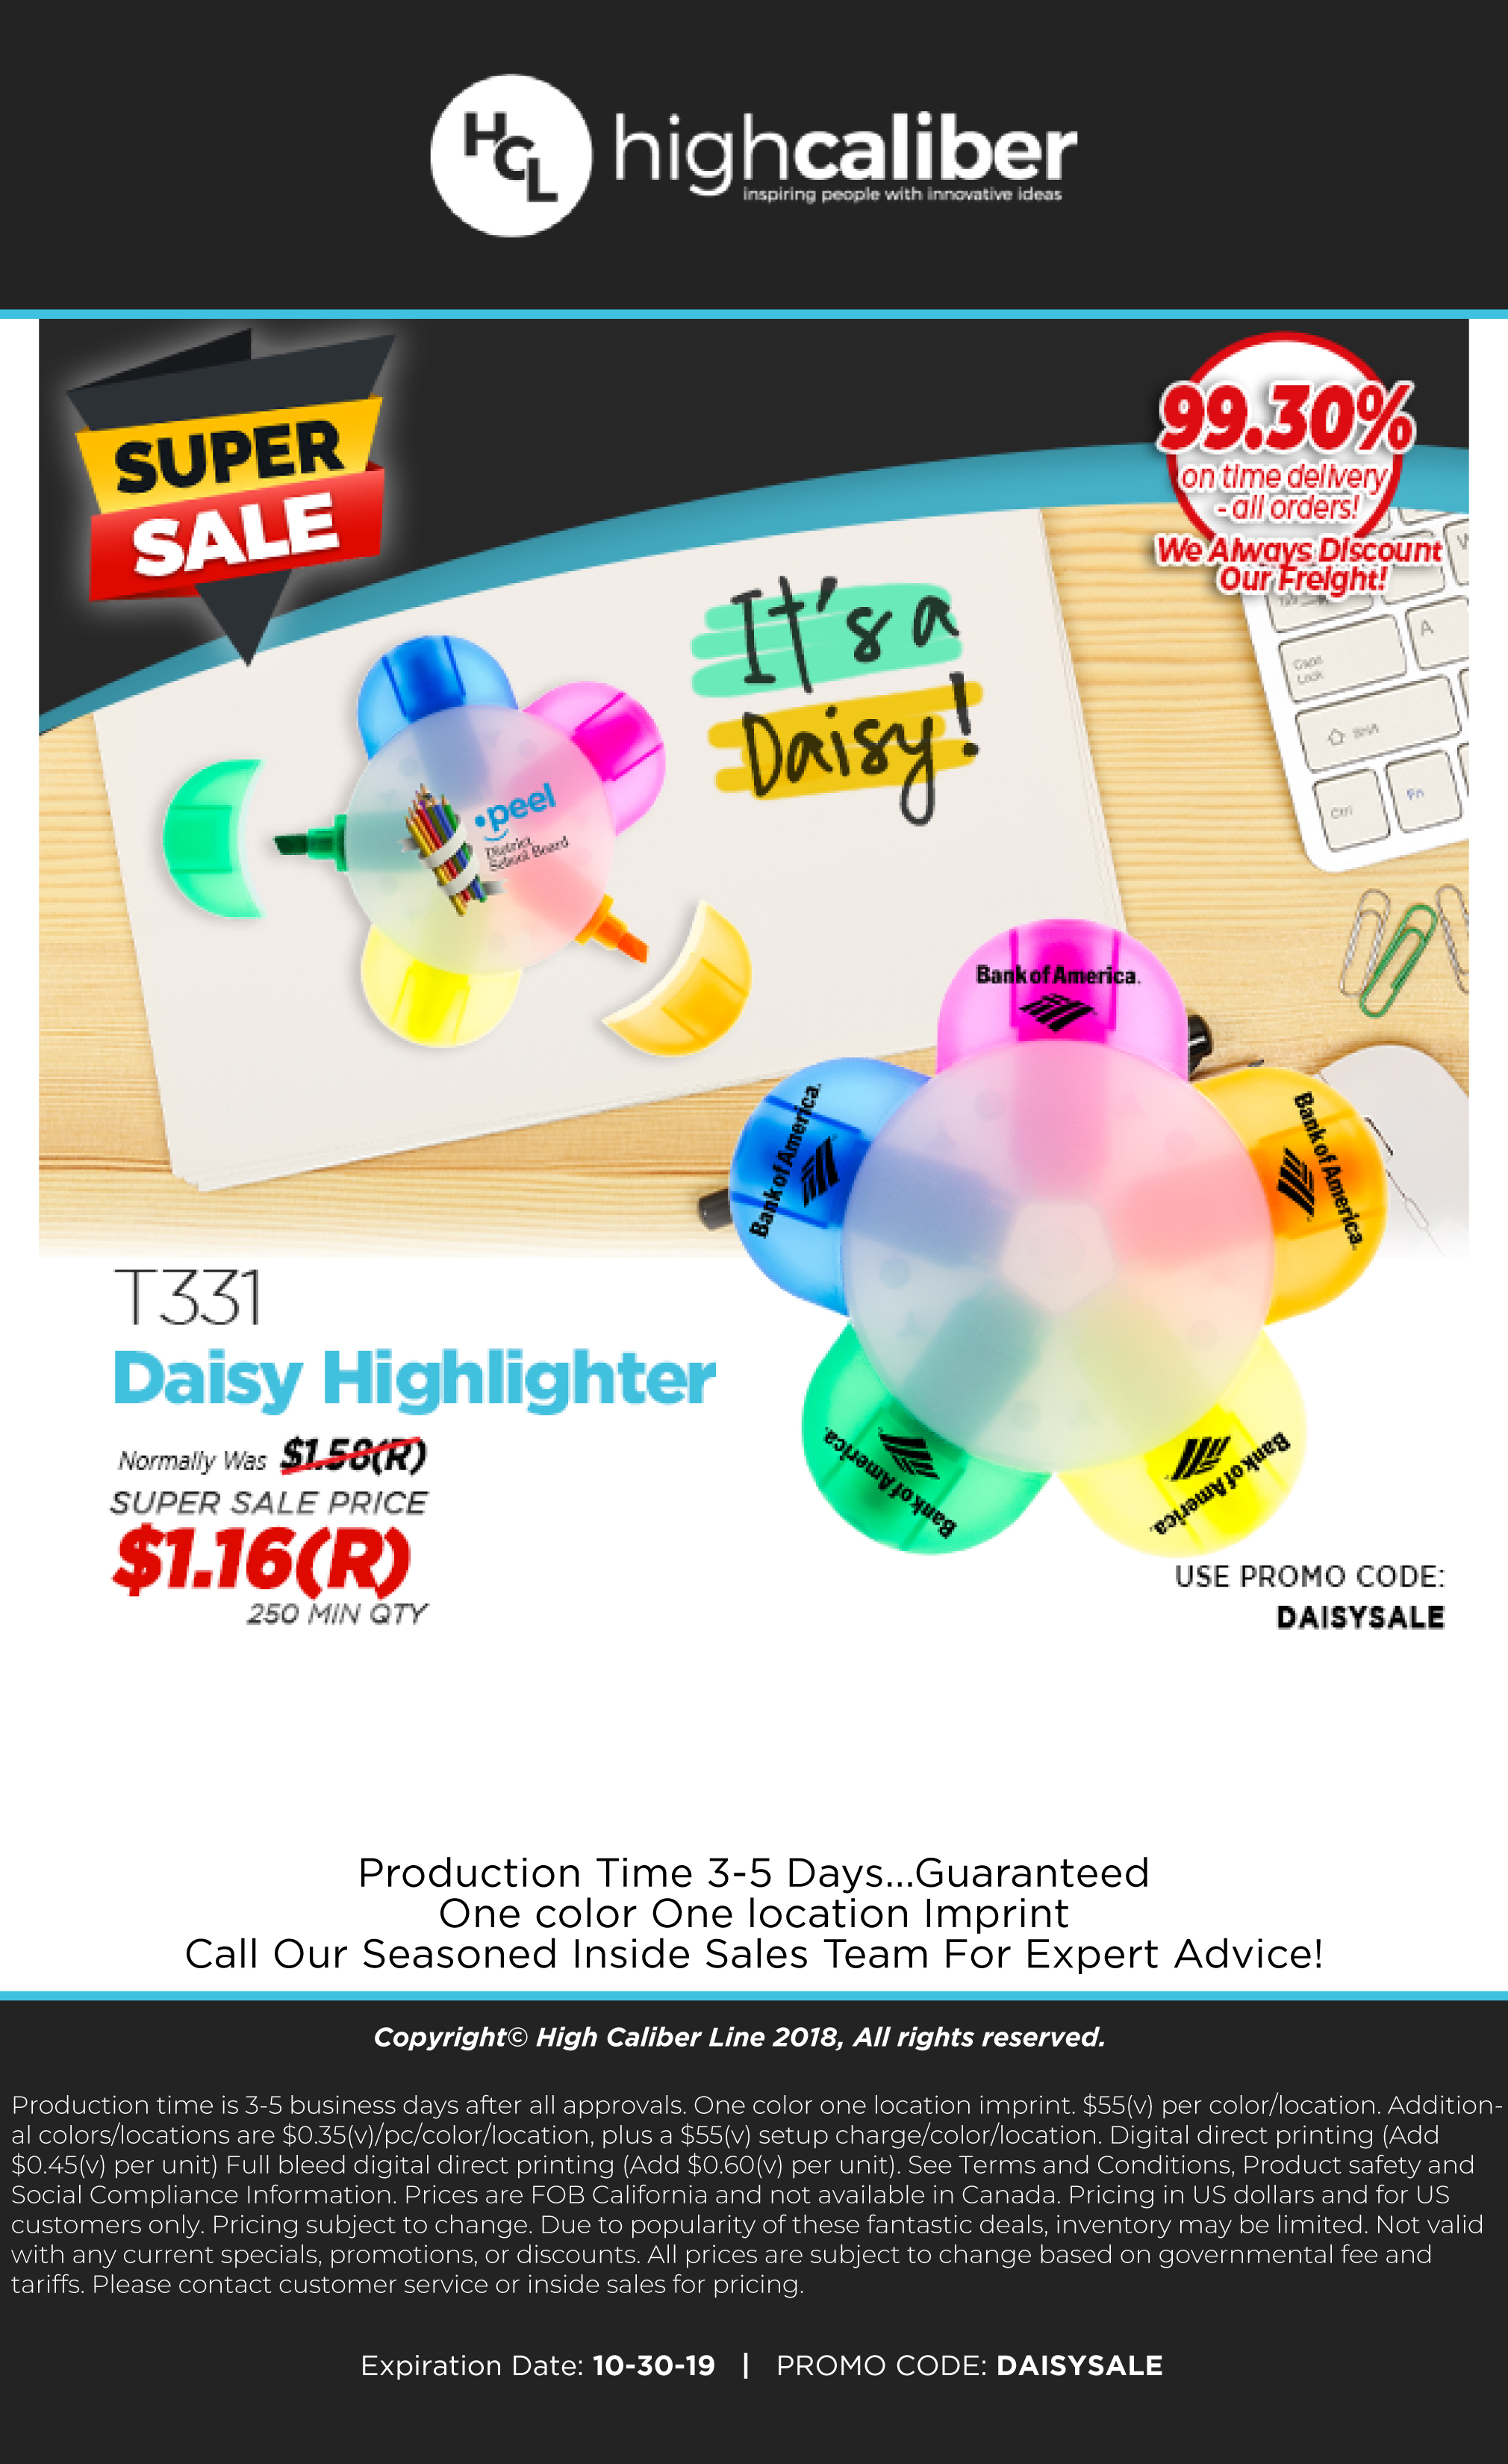 $1.16(R) Super Sale Price on the T331 Daisy Highlighter